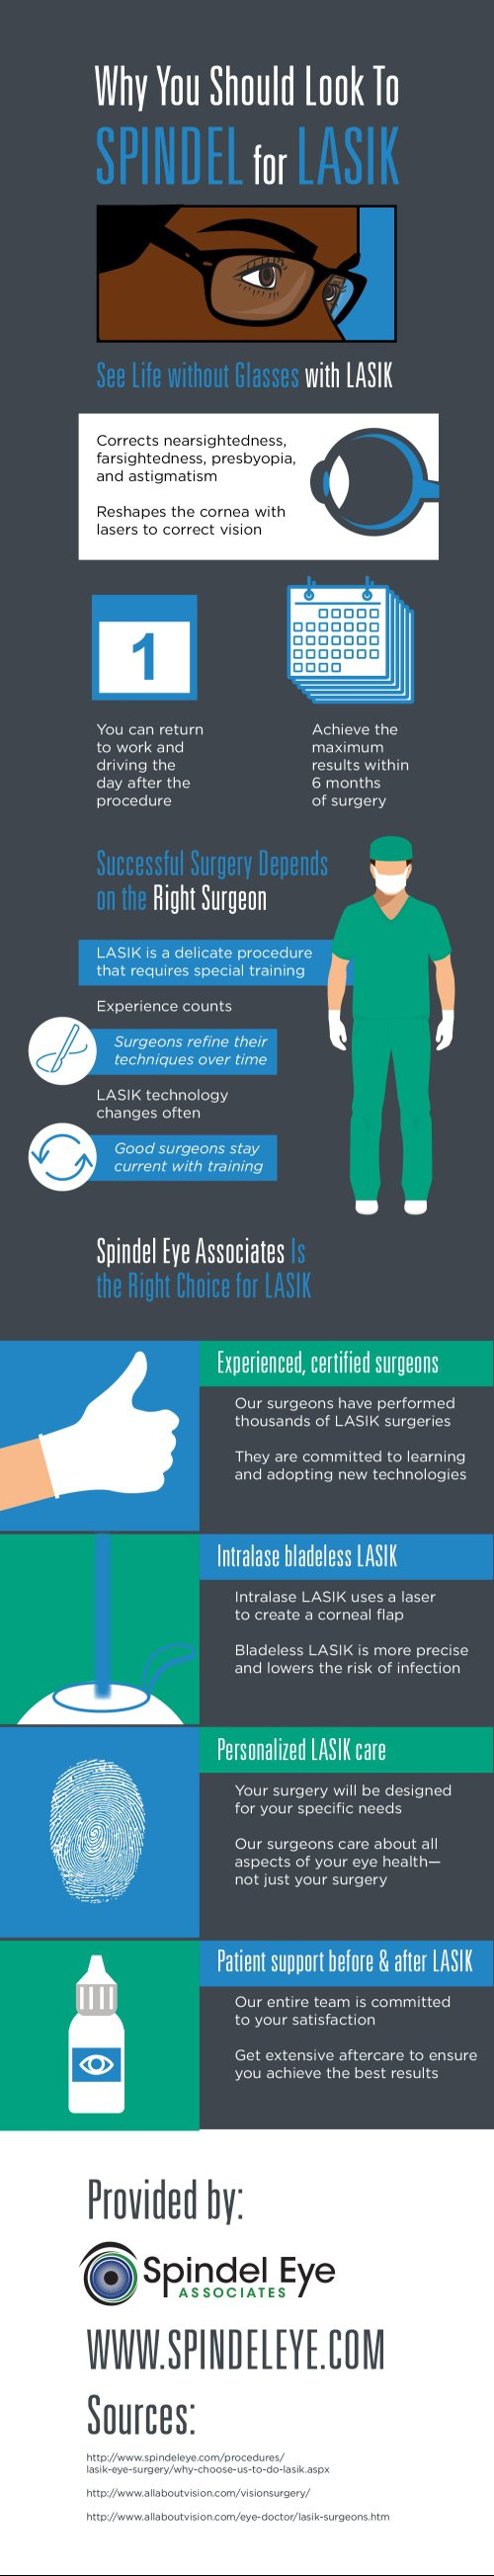 Why You Should Look to Spindel for LASIK